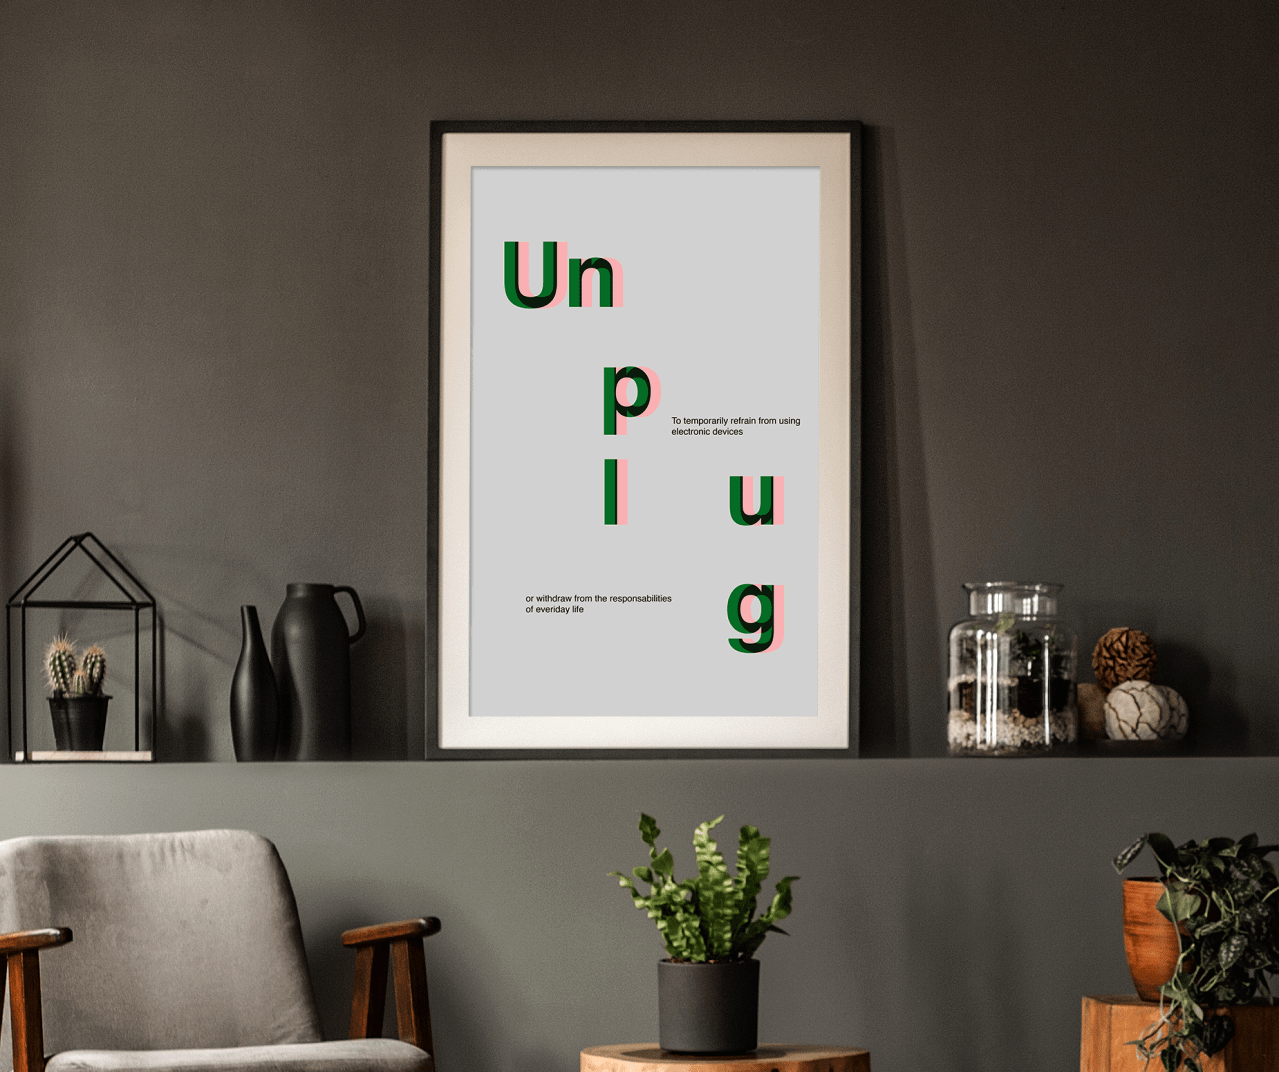 Free Office Interior Frame Poster Mockup PSD 2018